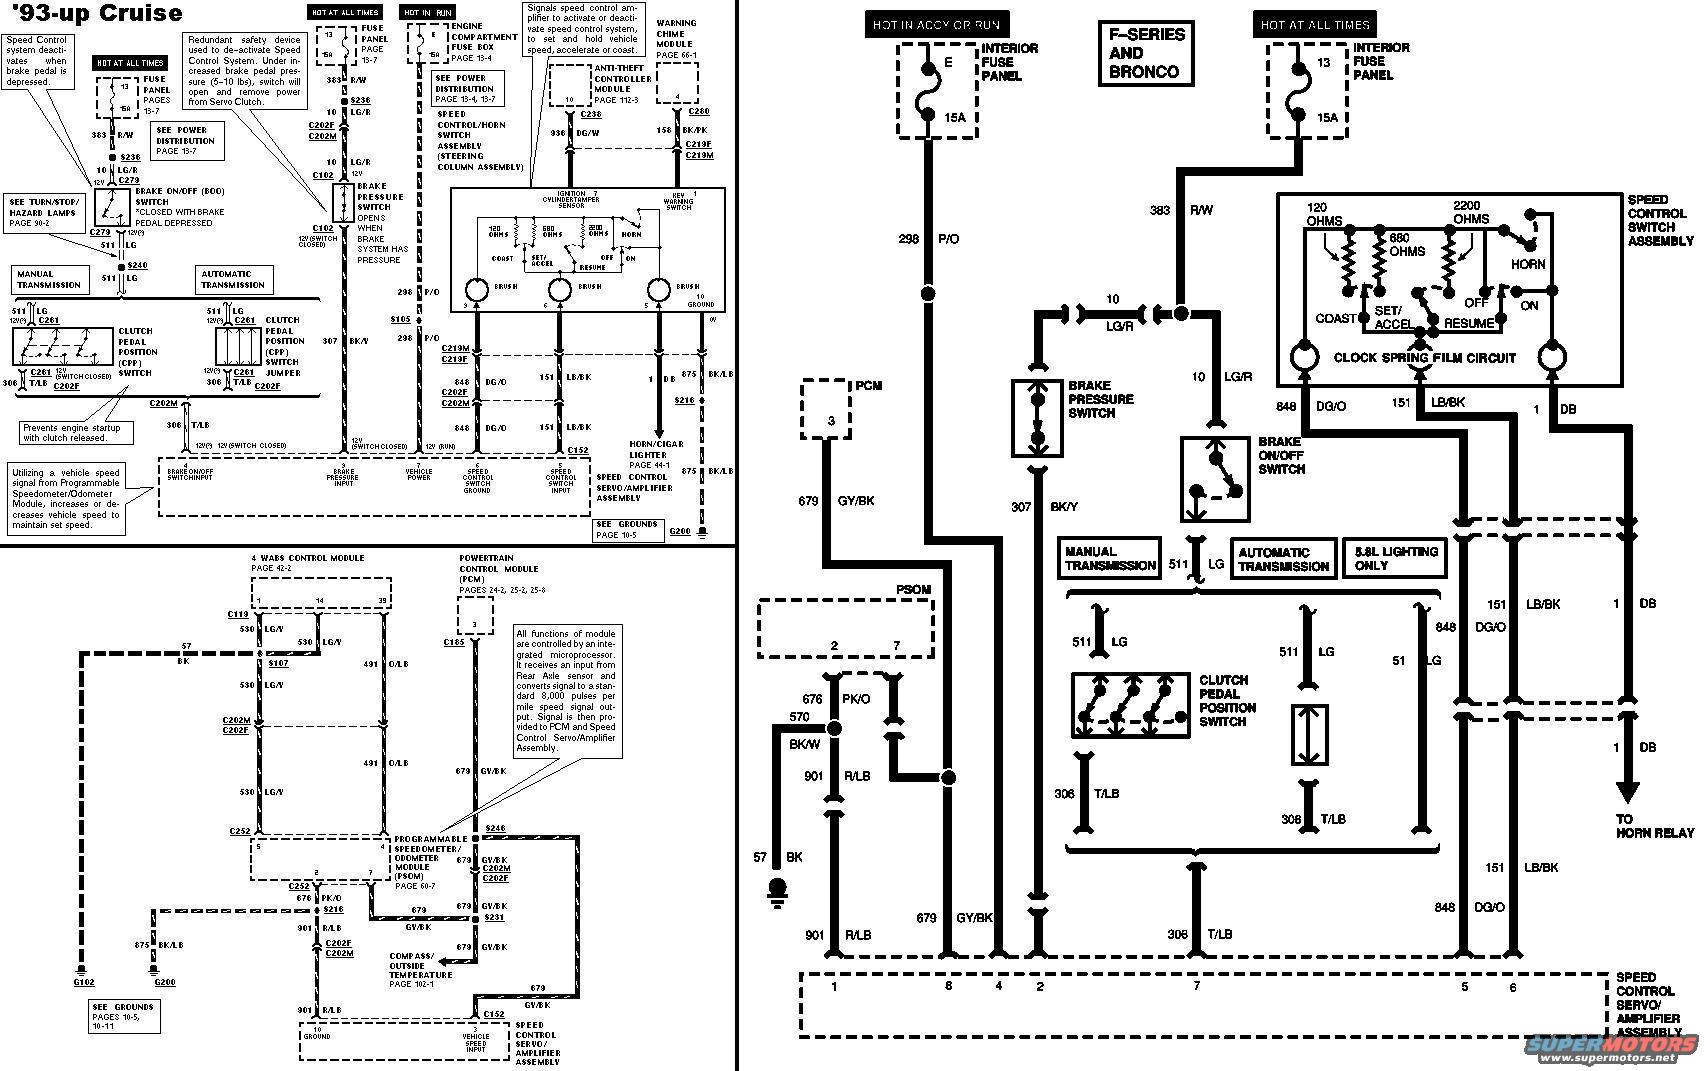 1986 ford f250 wiring diagram 1986 discover your wiring diagram 1217027 93 ford f250 cruise control problem